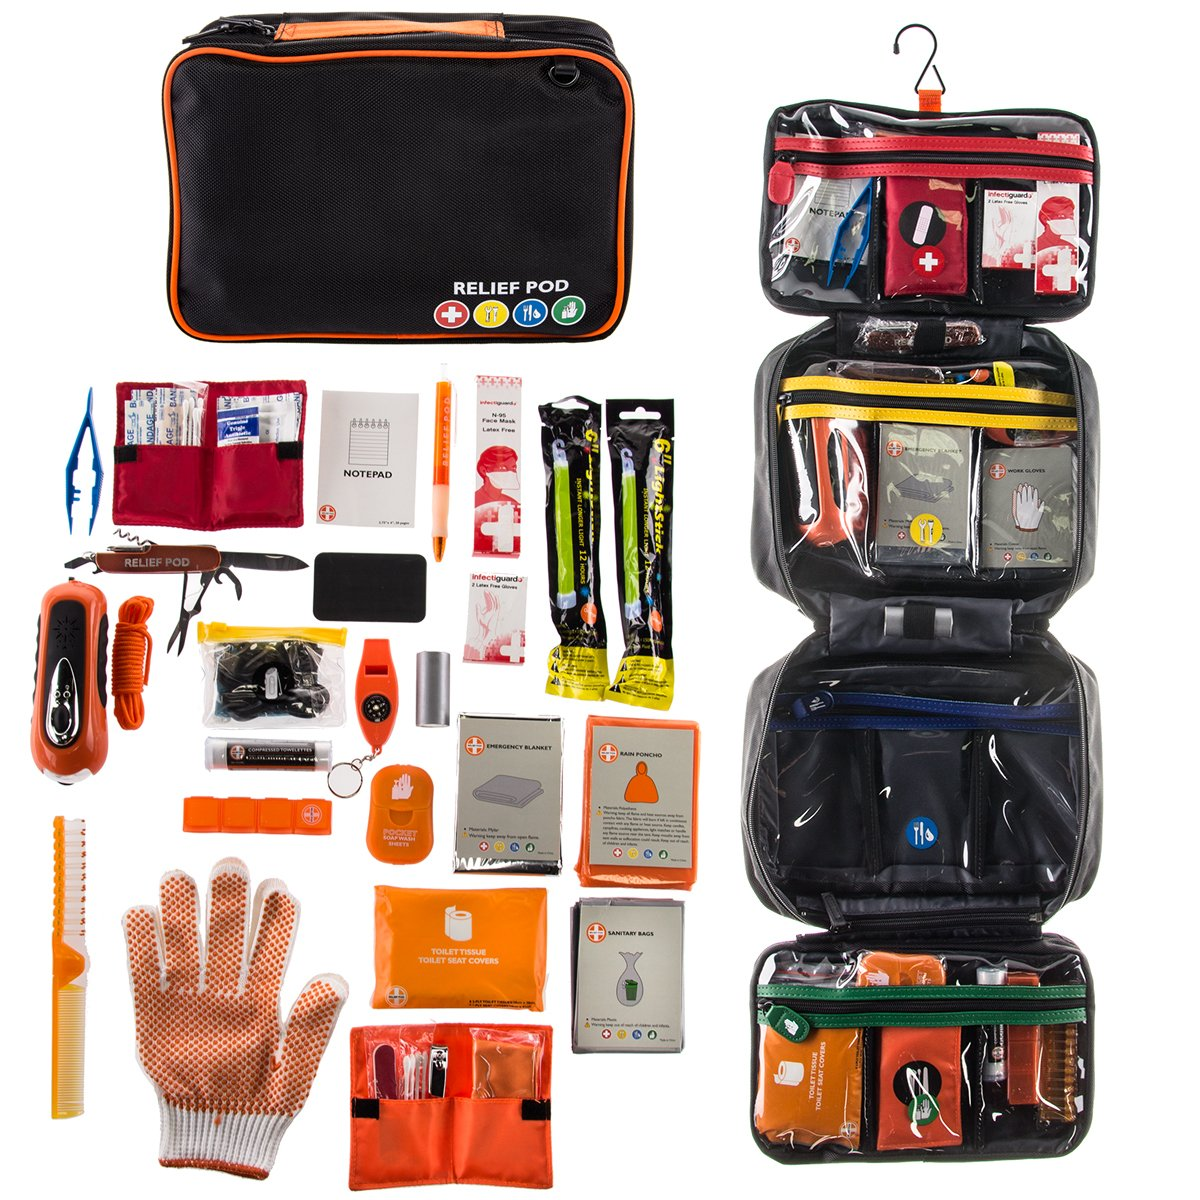 Empower Elegance Emergency Kit Relief Pod Survival First Aid for Disaster Preparedness Home Car